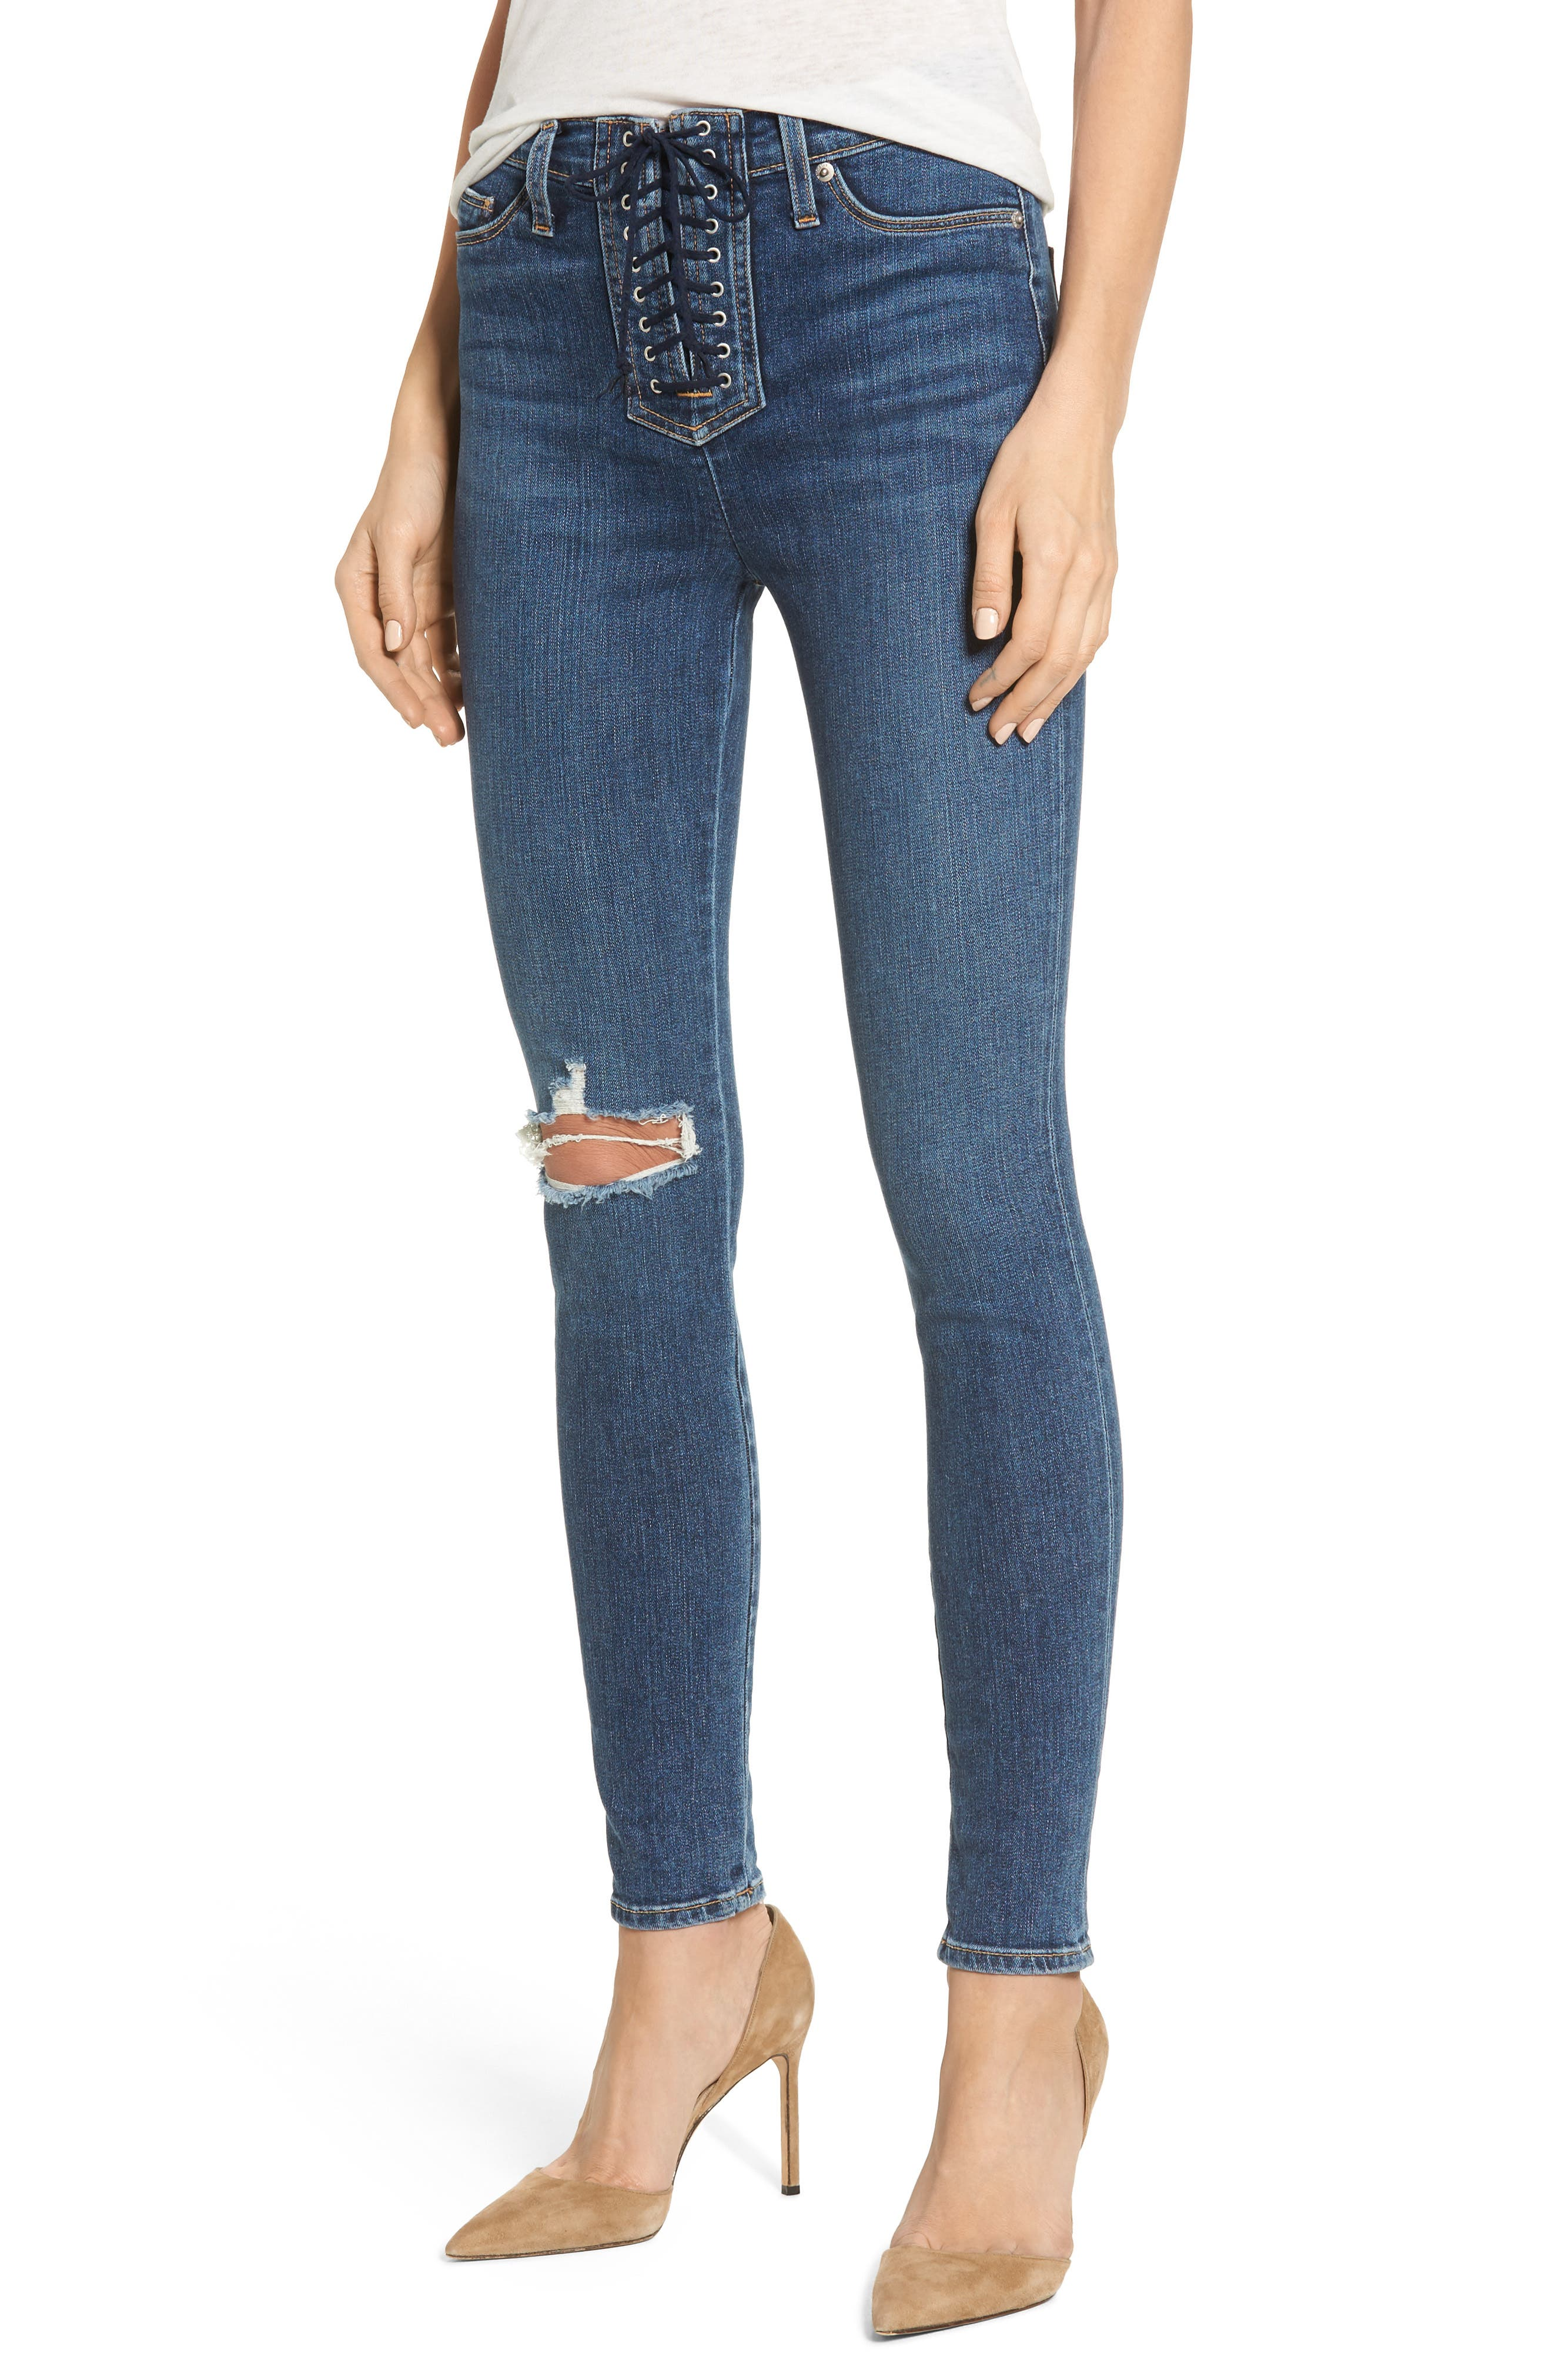 Bullocks Lace-Up High Waist Super Skinny Jeans,                         Main,                         color, 421